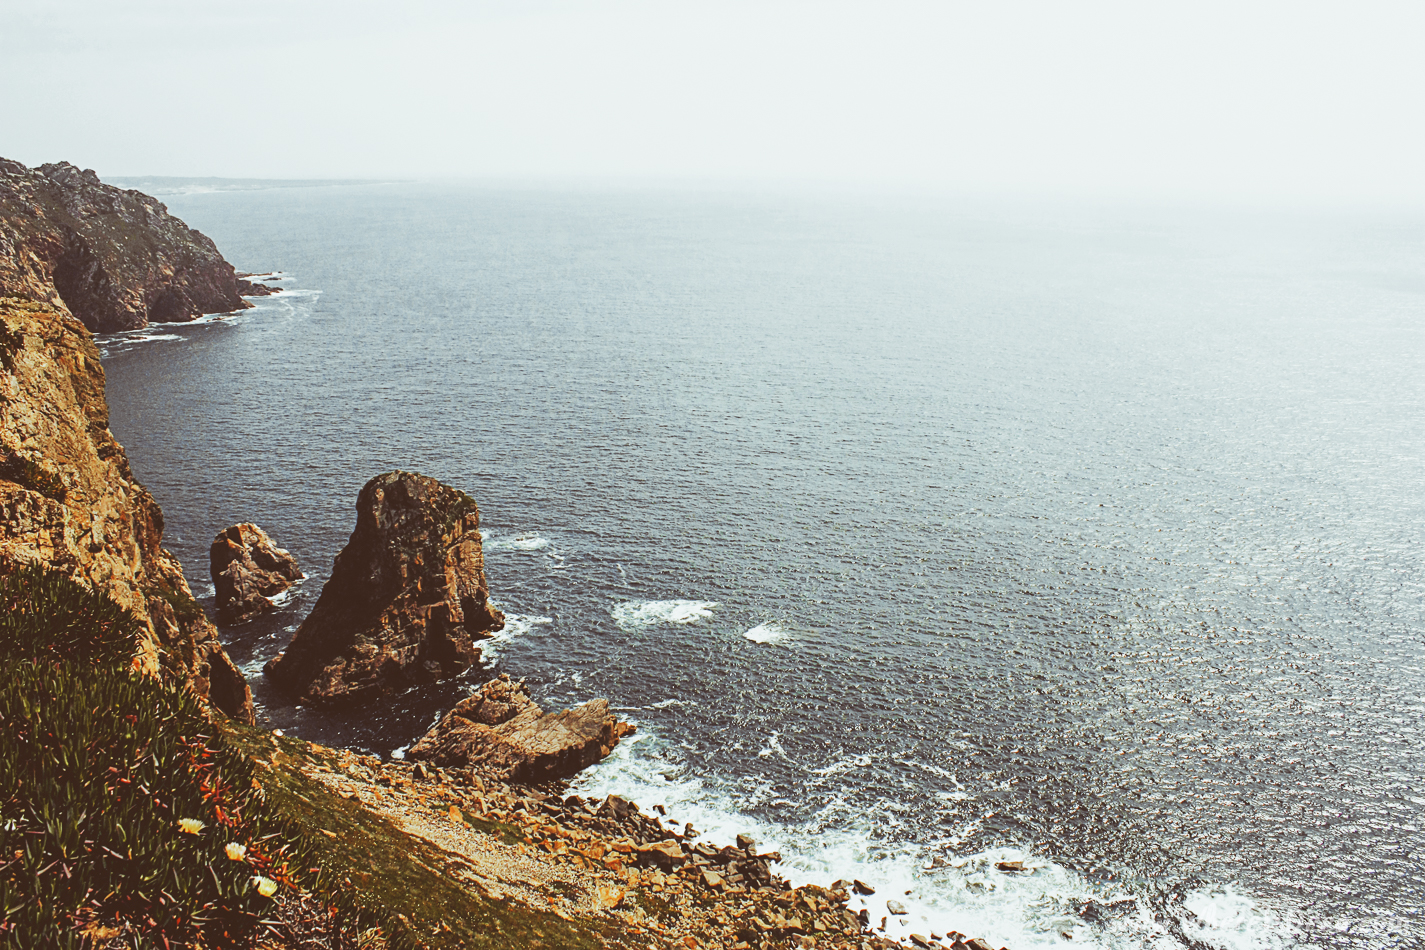 Where the land ends and the sea begins: Cabo da Roca